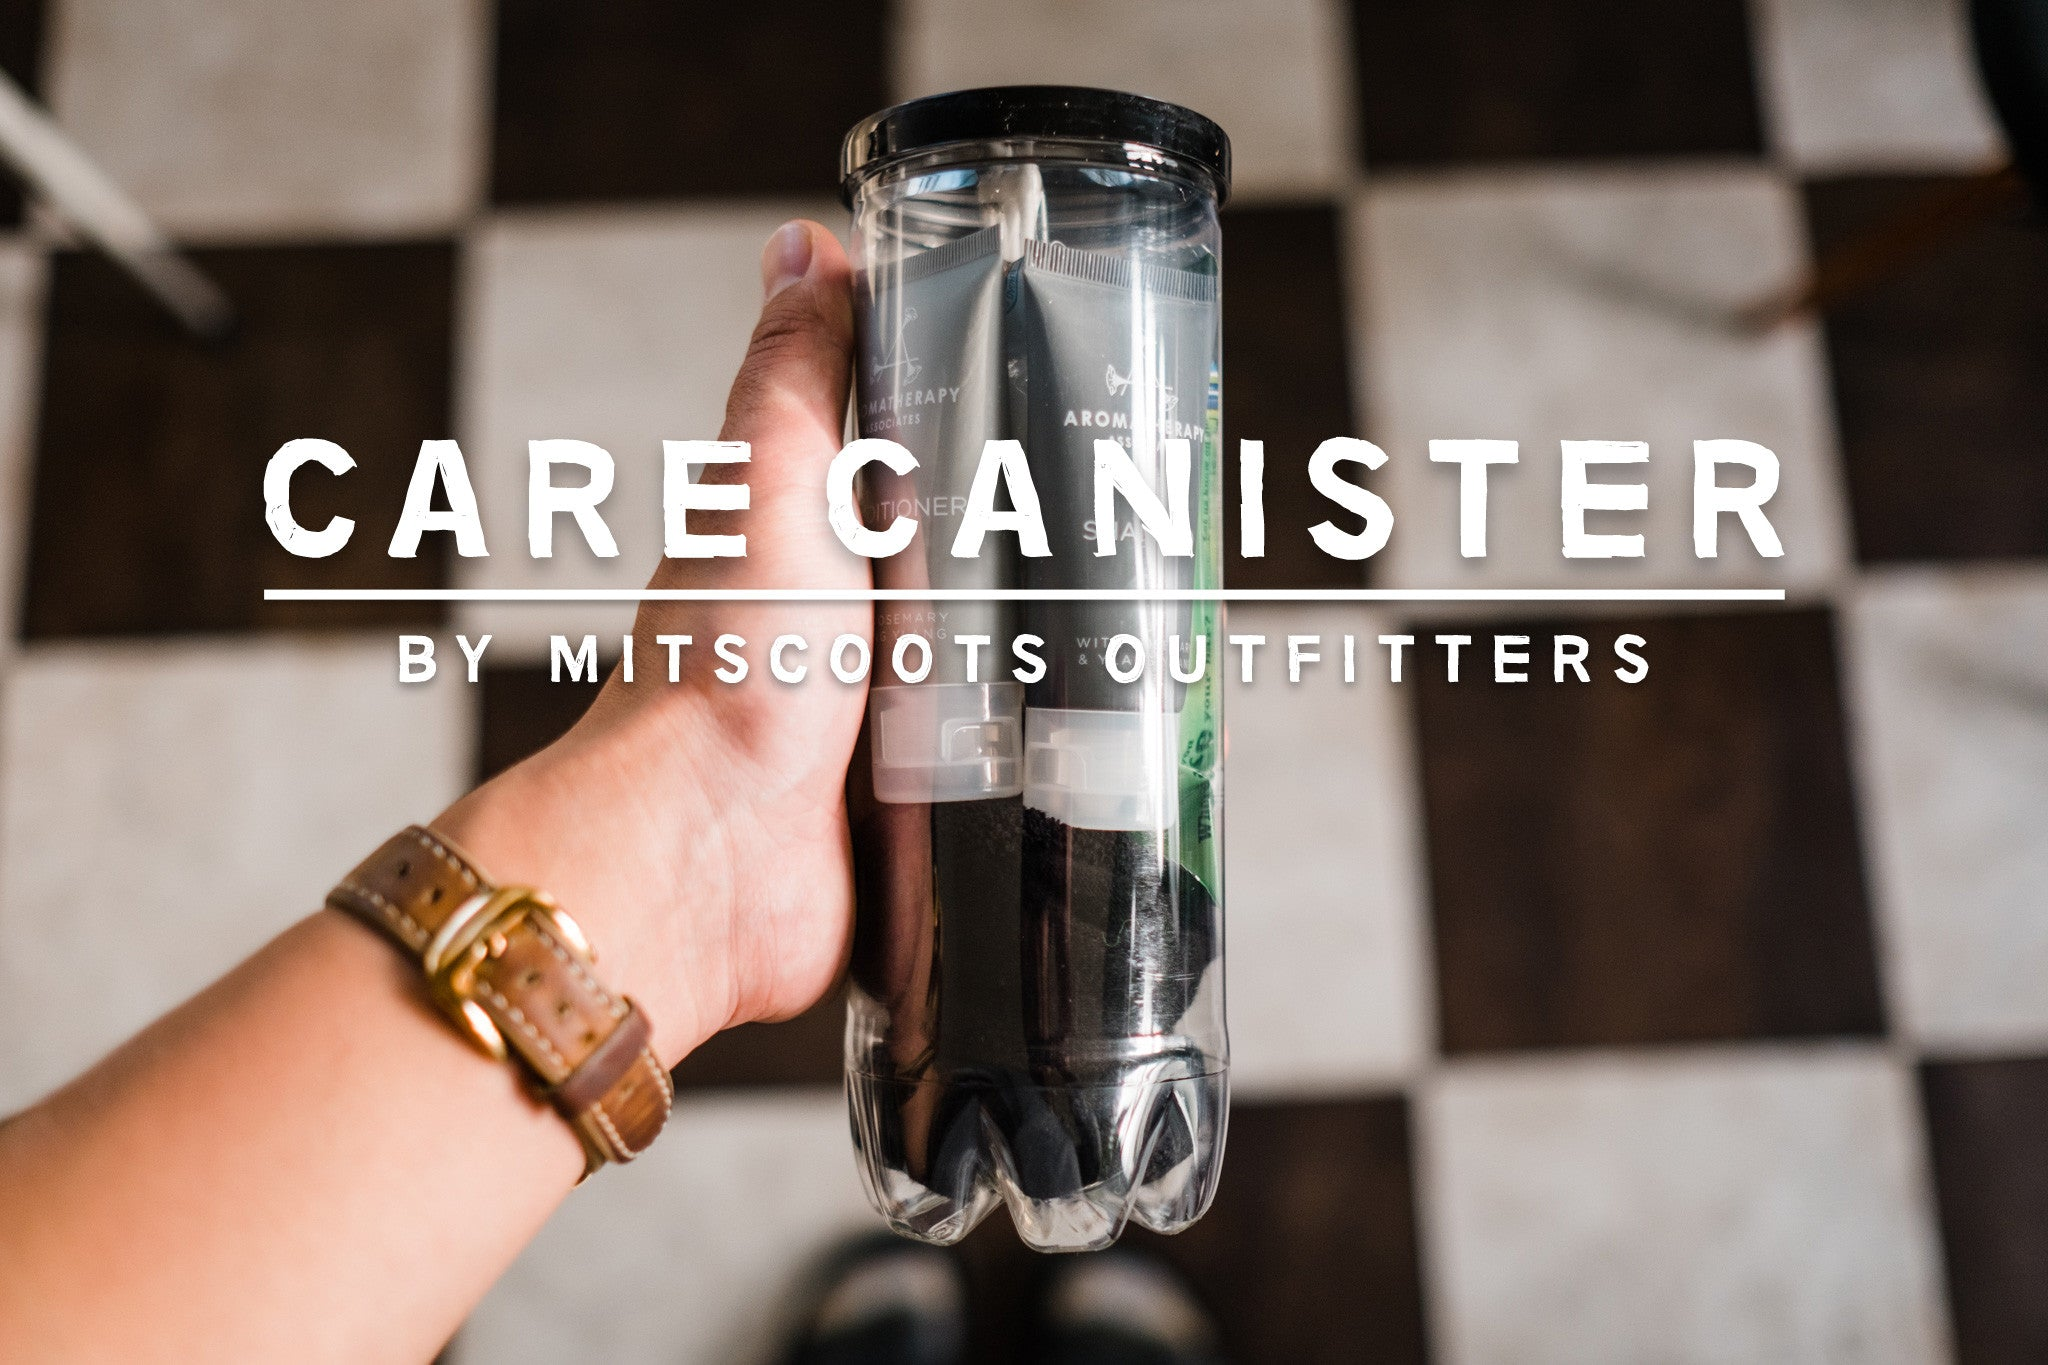 Care Canister for the Homeless By Mitscoots Outfitters